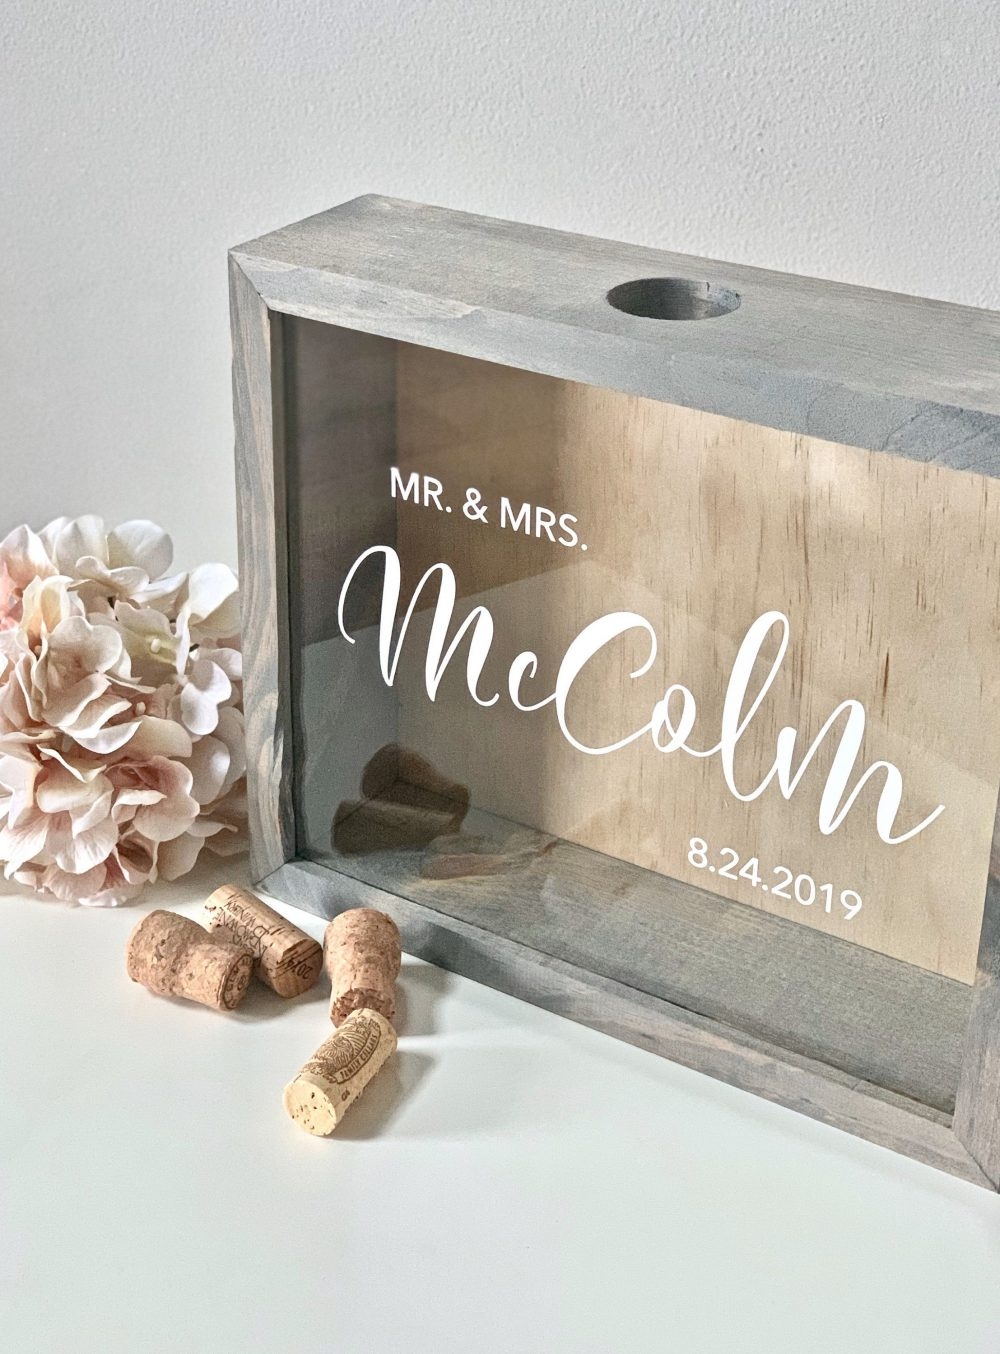 Wine Cork Holder | Wood Shadow Box Wedding Guest Book Alternative Display Case Holds Flowers, Messages, Champagne Corks, Tickets & More